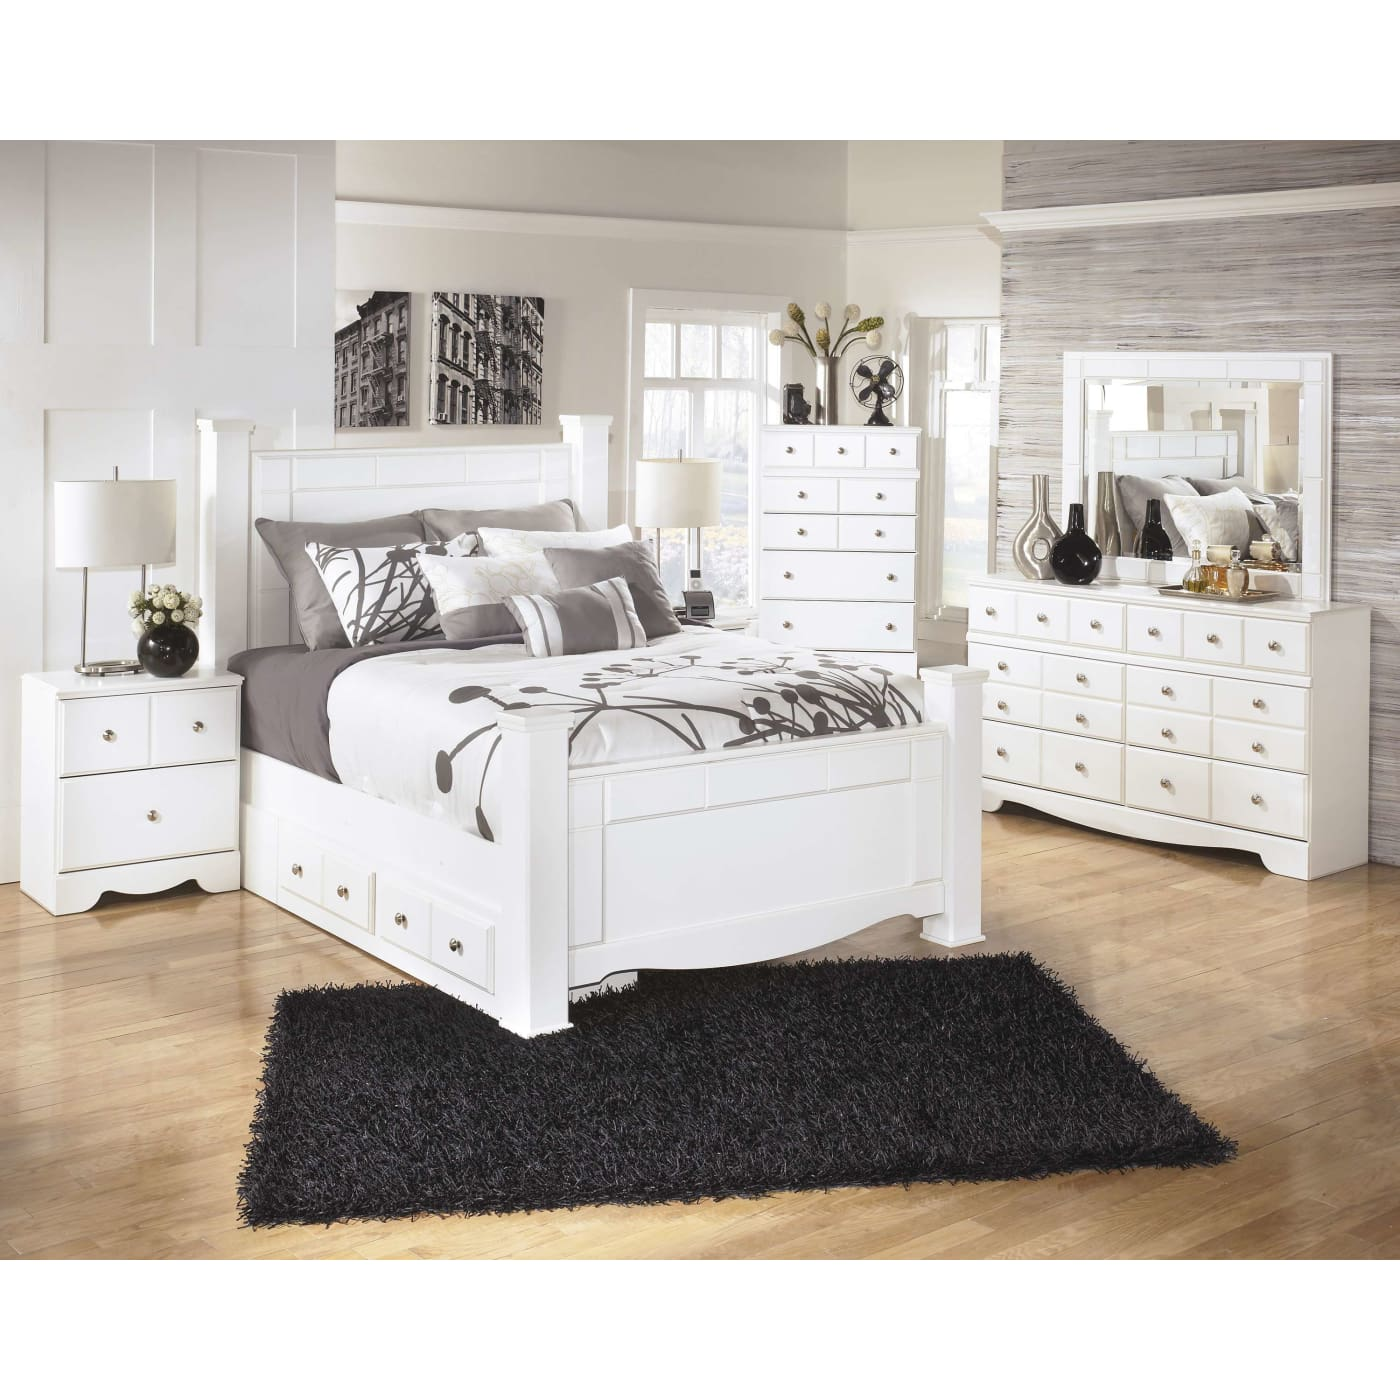 Signature design by ashley weeki white 4 piece queen bedroom set with under bed storage Queen bedroom sets with underbed storage